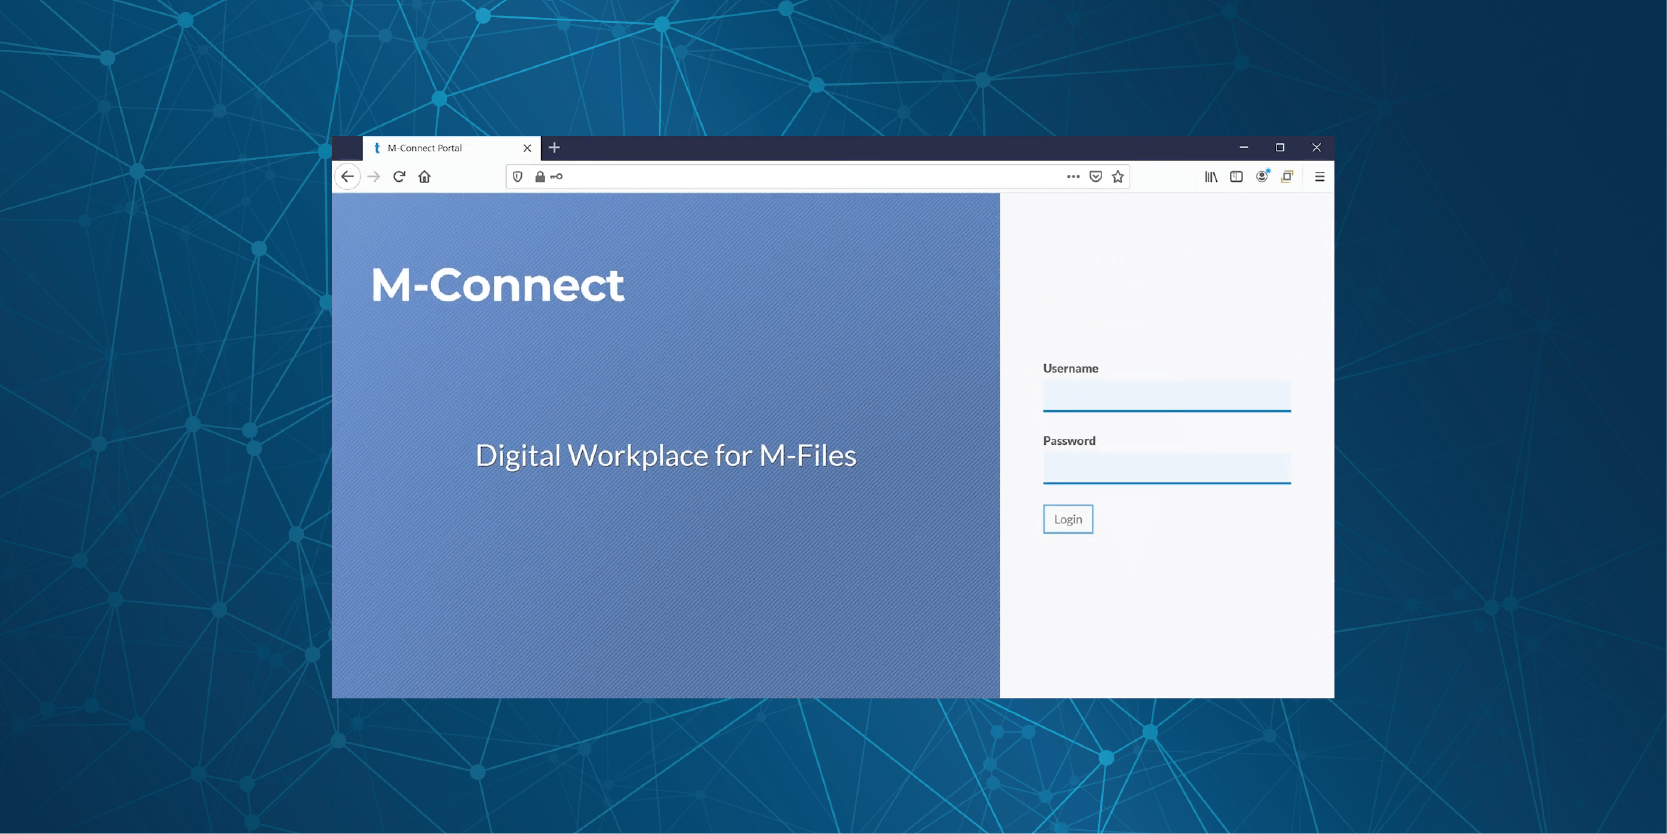 Product Background + M-Connect Logon Page v1